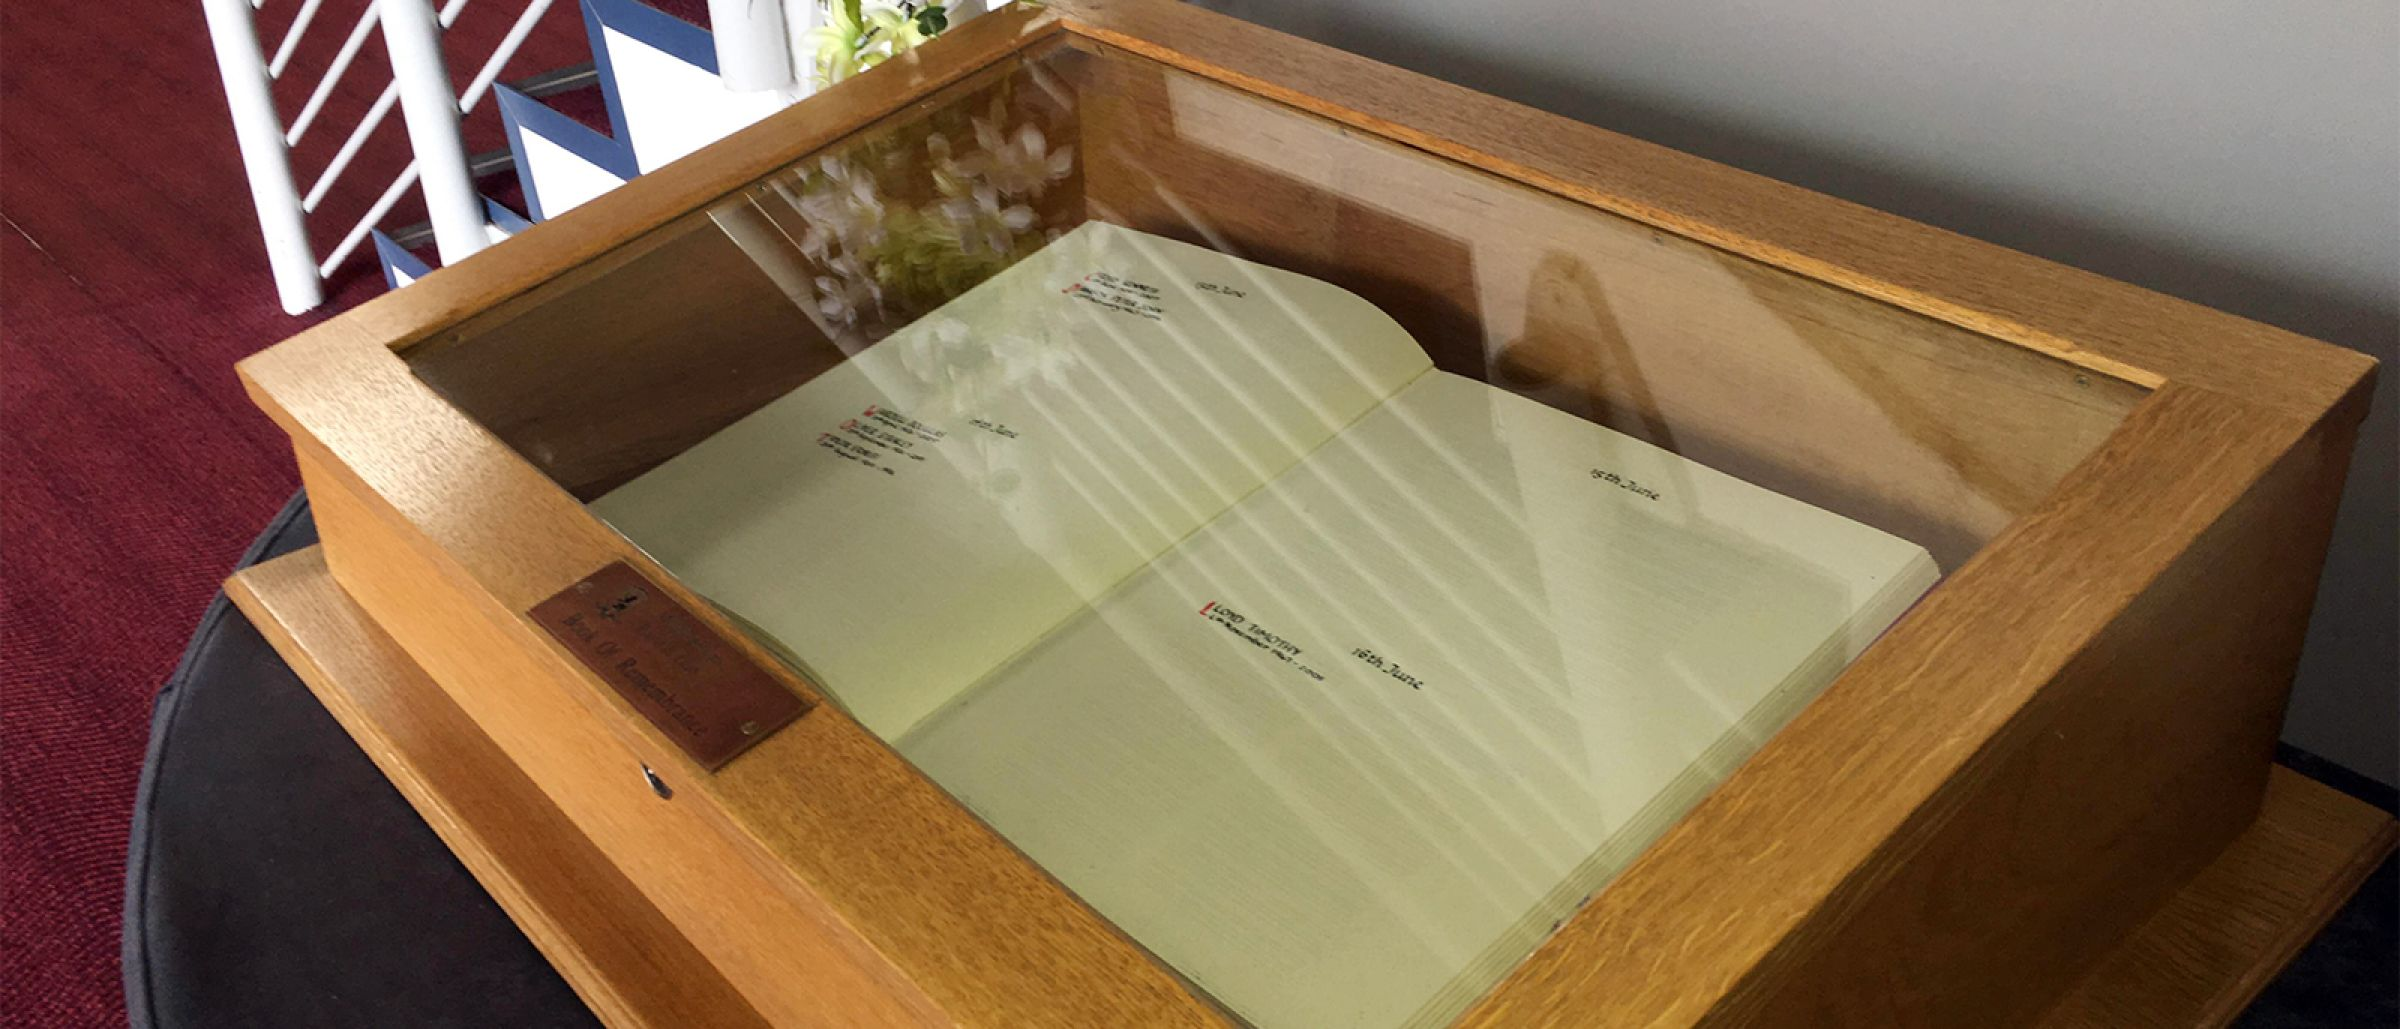 The Book of Remembrance at the Riverside Stadium